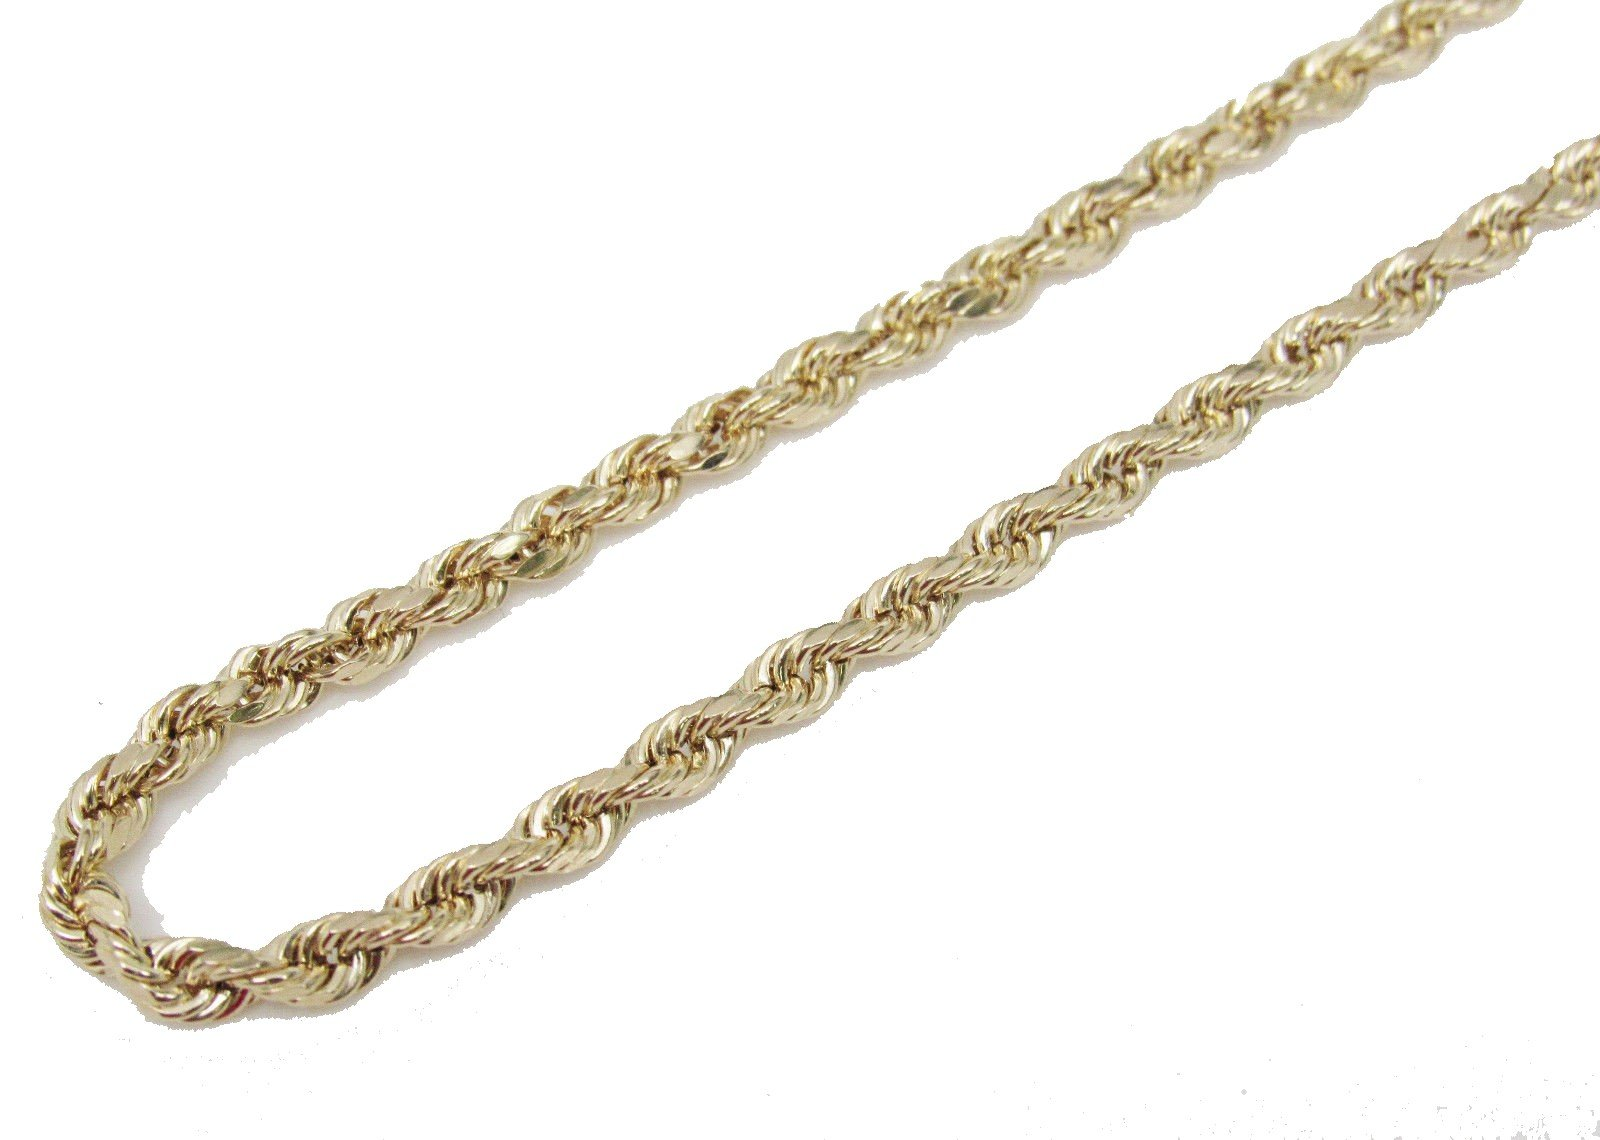 10K Yellow Gold Italian Rope Chain 30'' 2.5mm wide Hollow 4.2 Grams